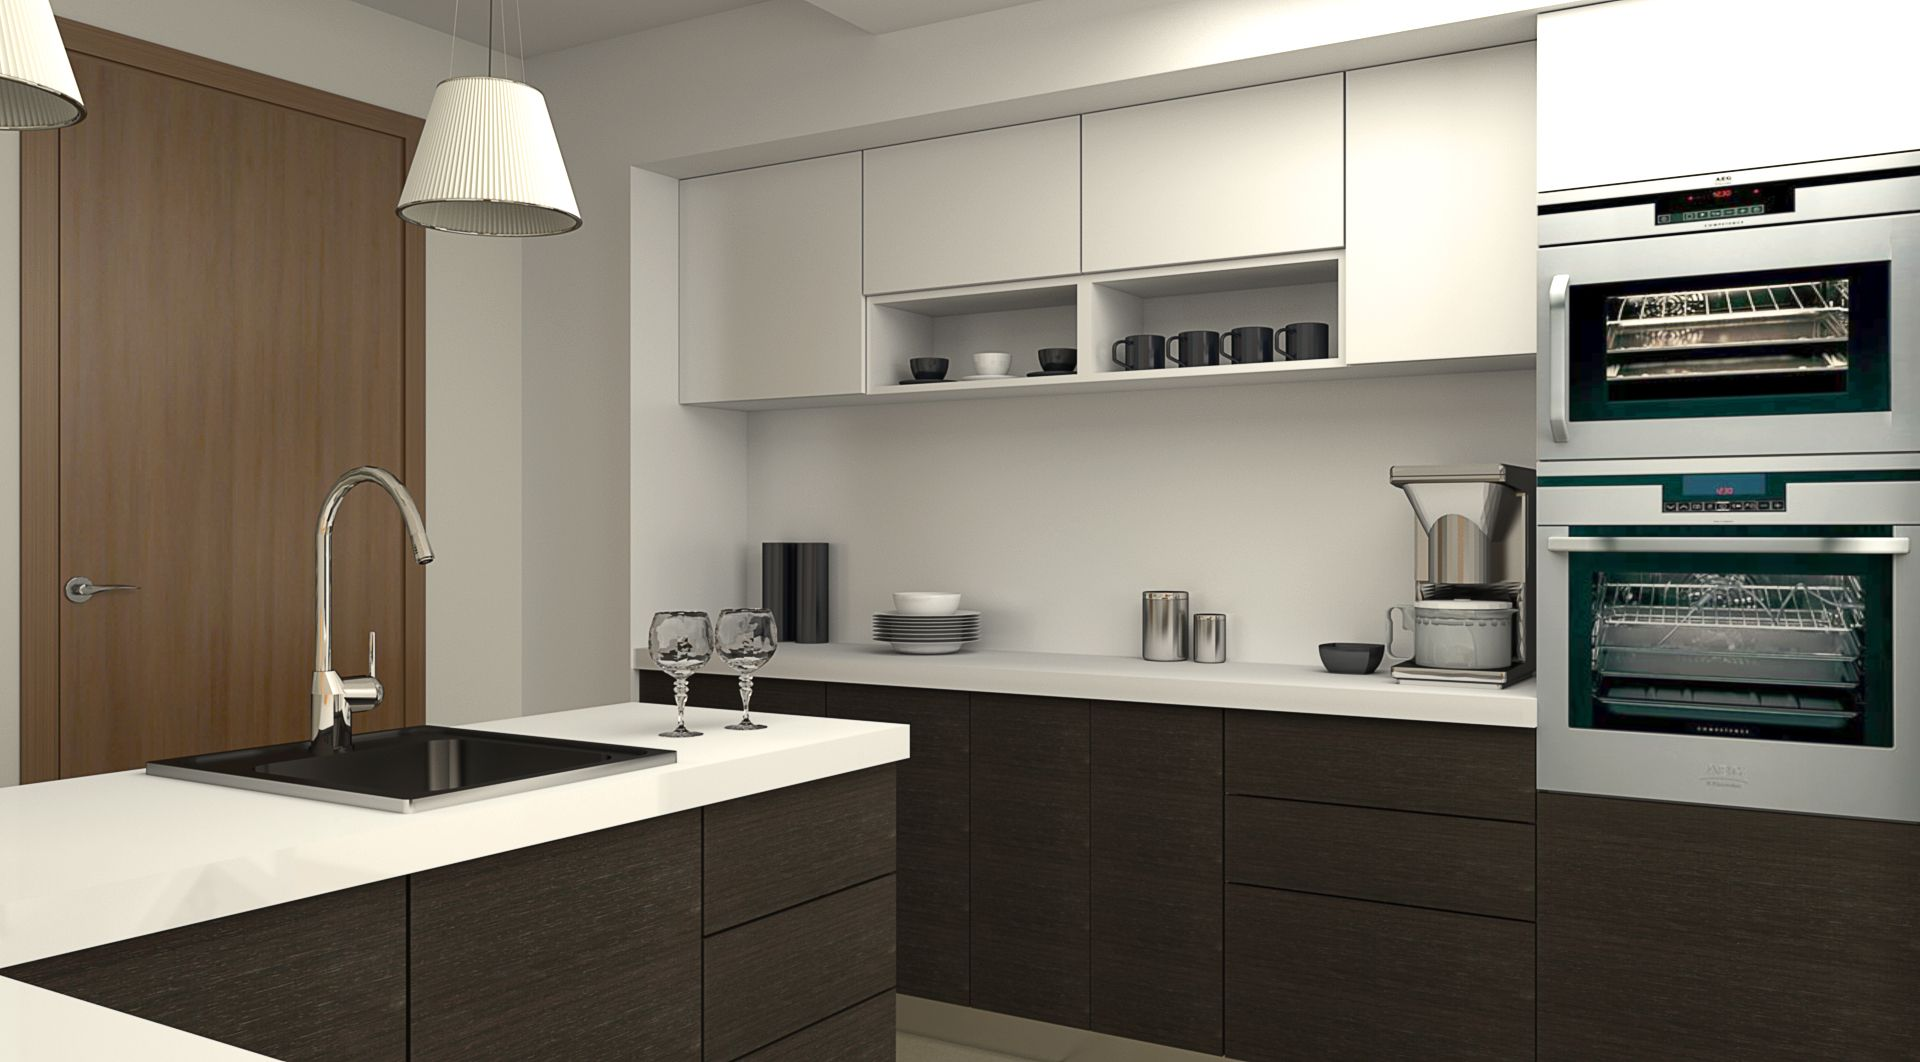 Browse And Chose Awesome Island Modular Kitchens From Krios Classy Kitchen 3D Design Design Decoration